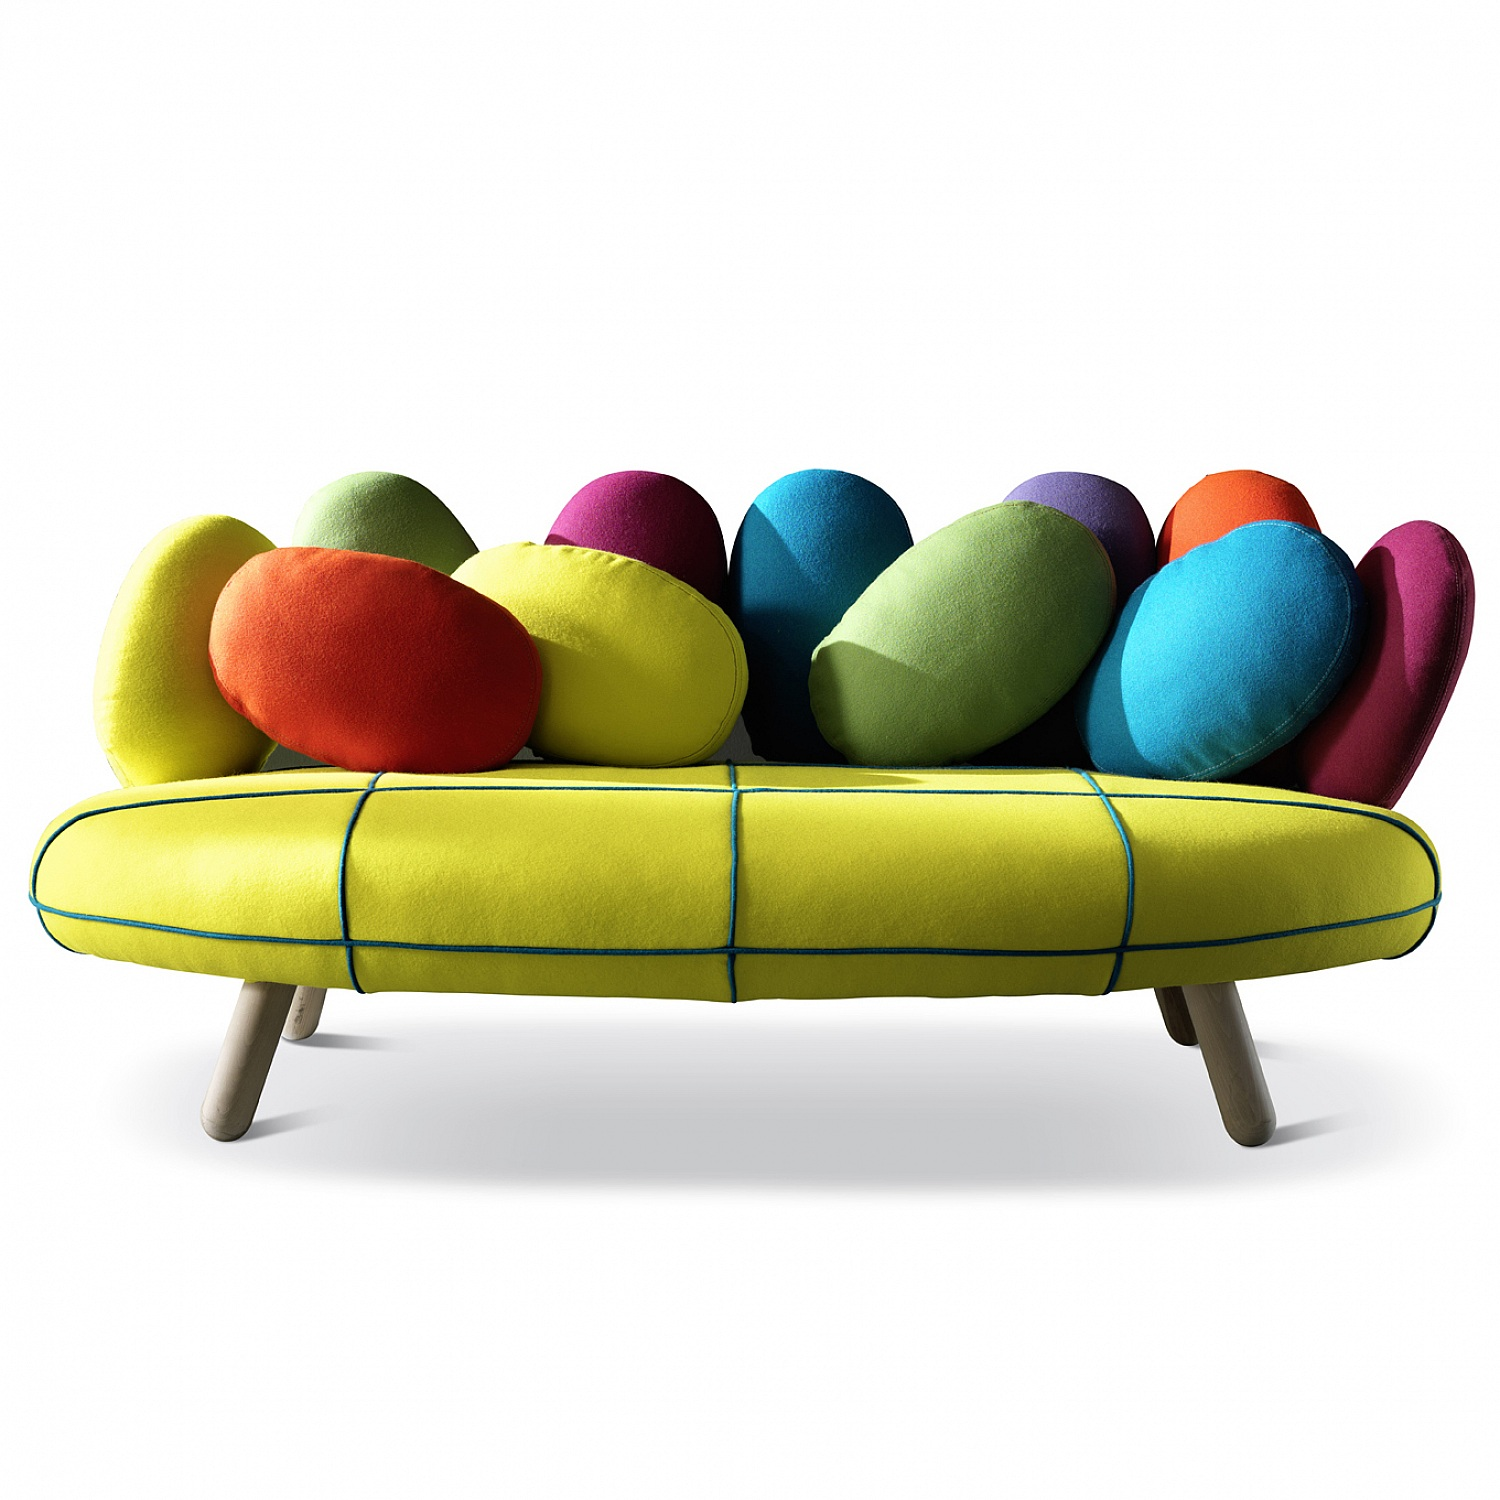 unique funky sofa for your 2p sofa by adrenalina colourful design funky ICODVQU